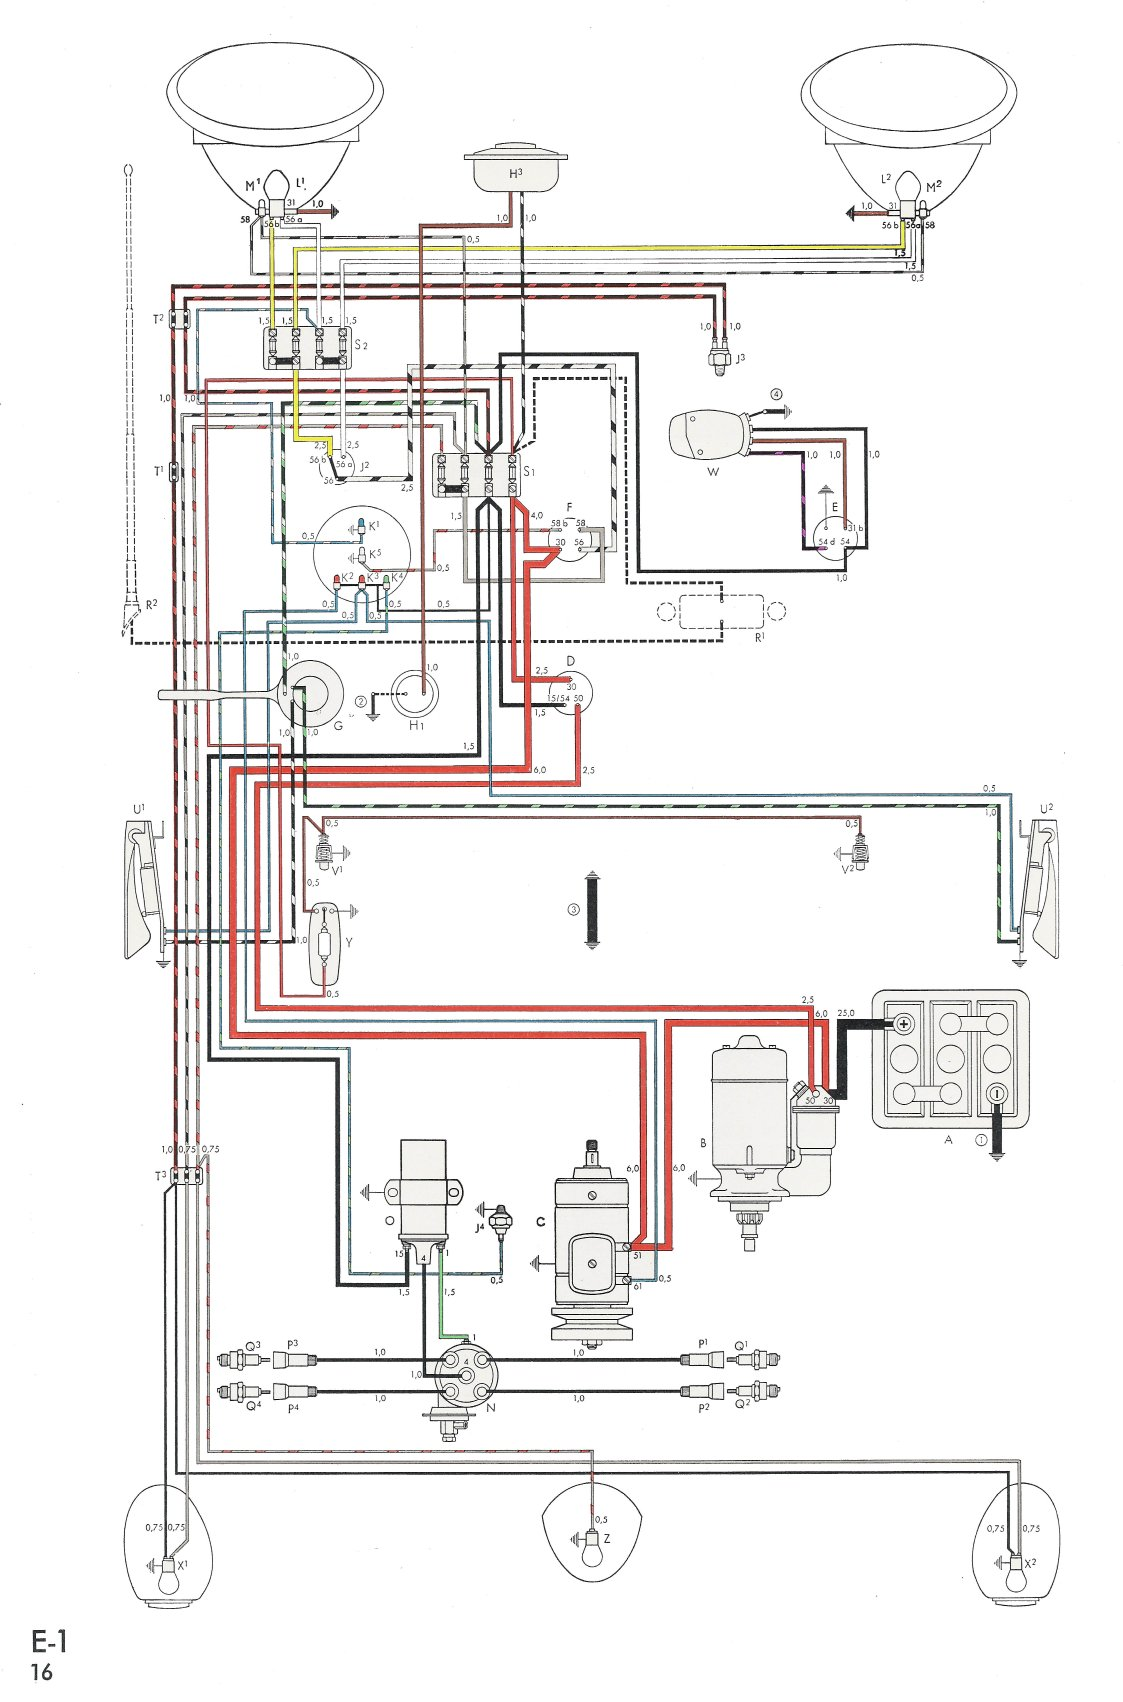 hight resolution of thesamba com type 1 wiring diagrams vw light switch wiring 58 vw alternator wiring